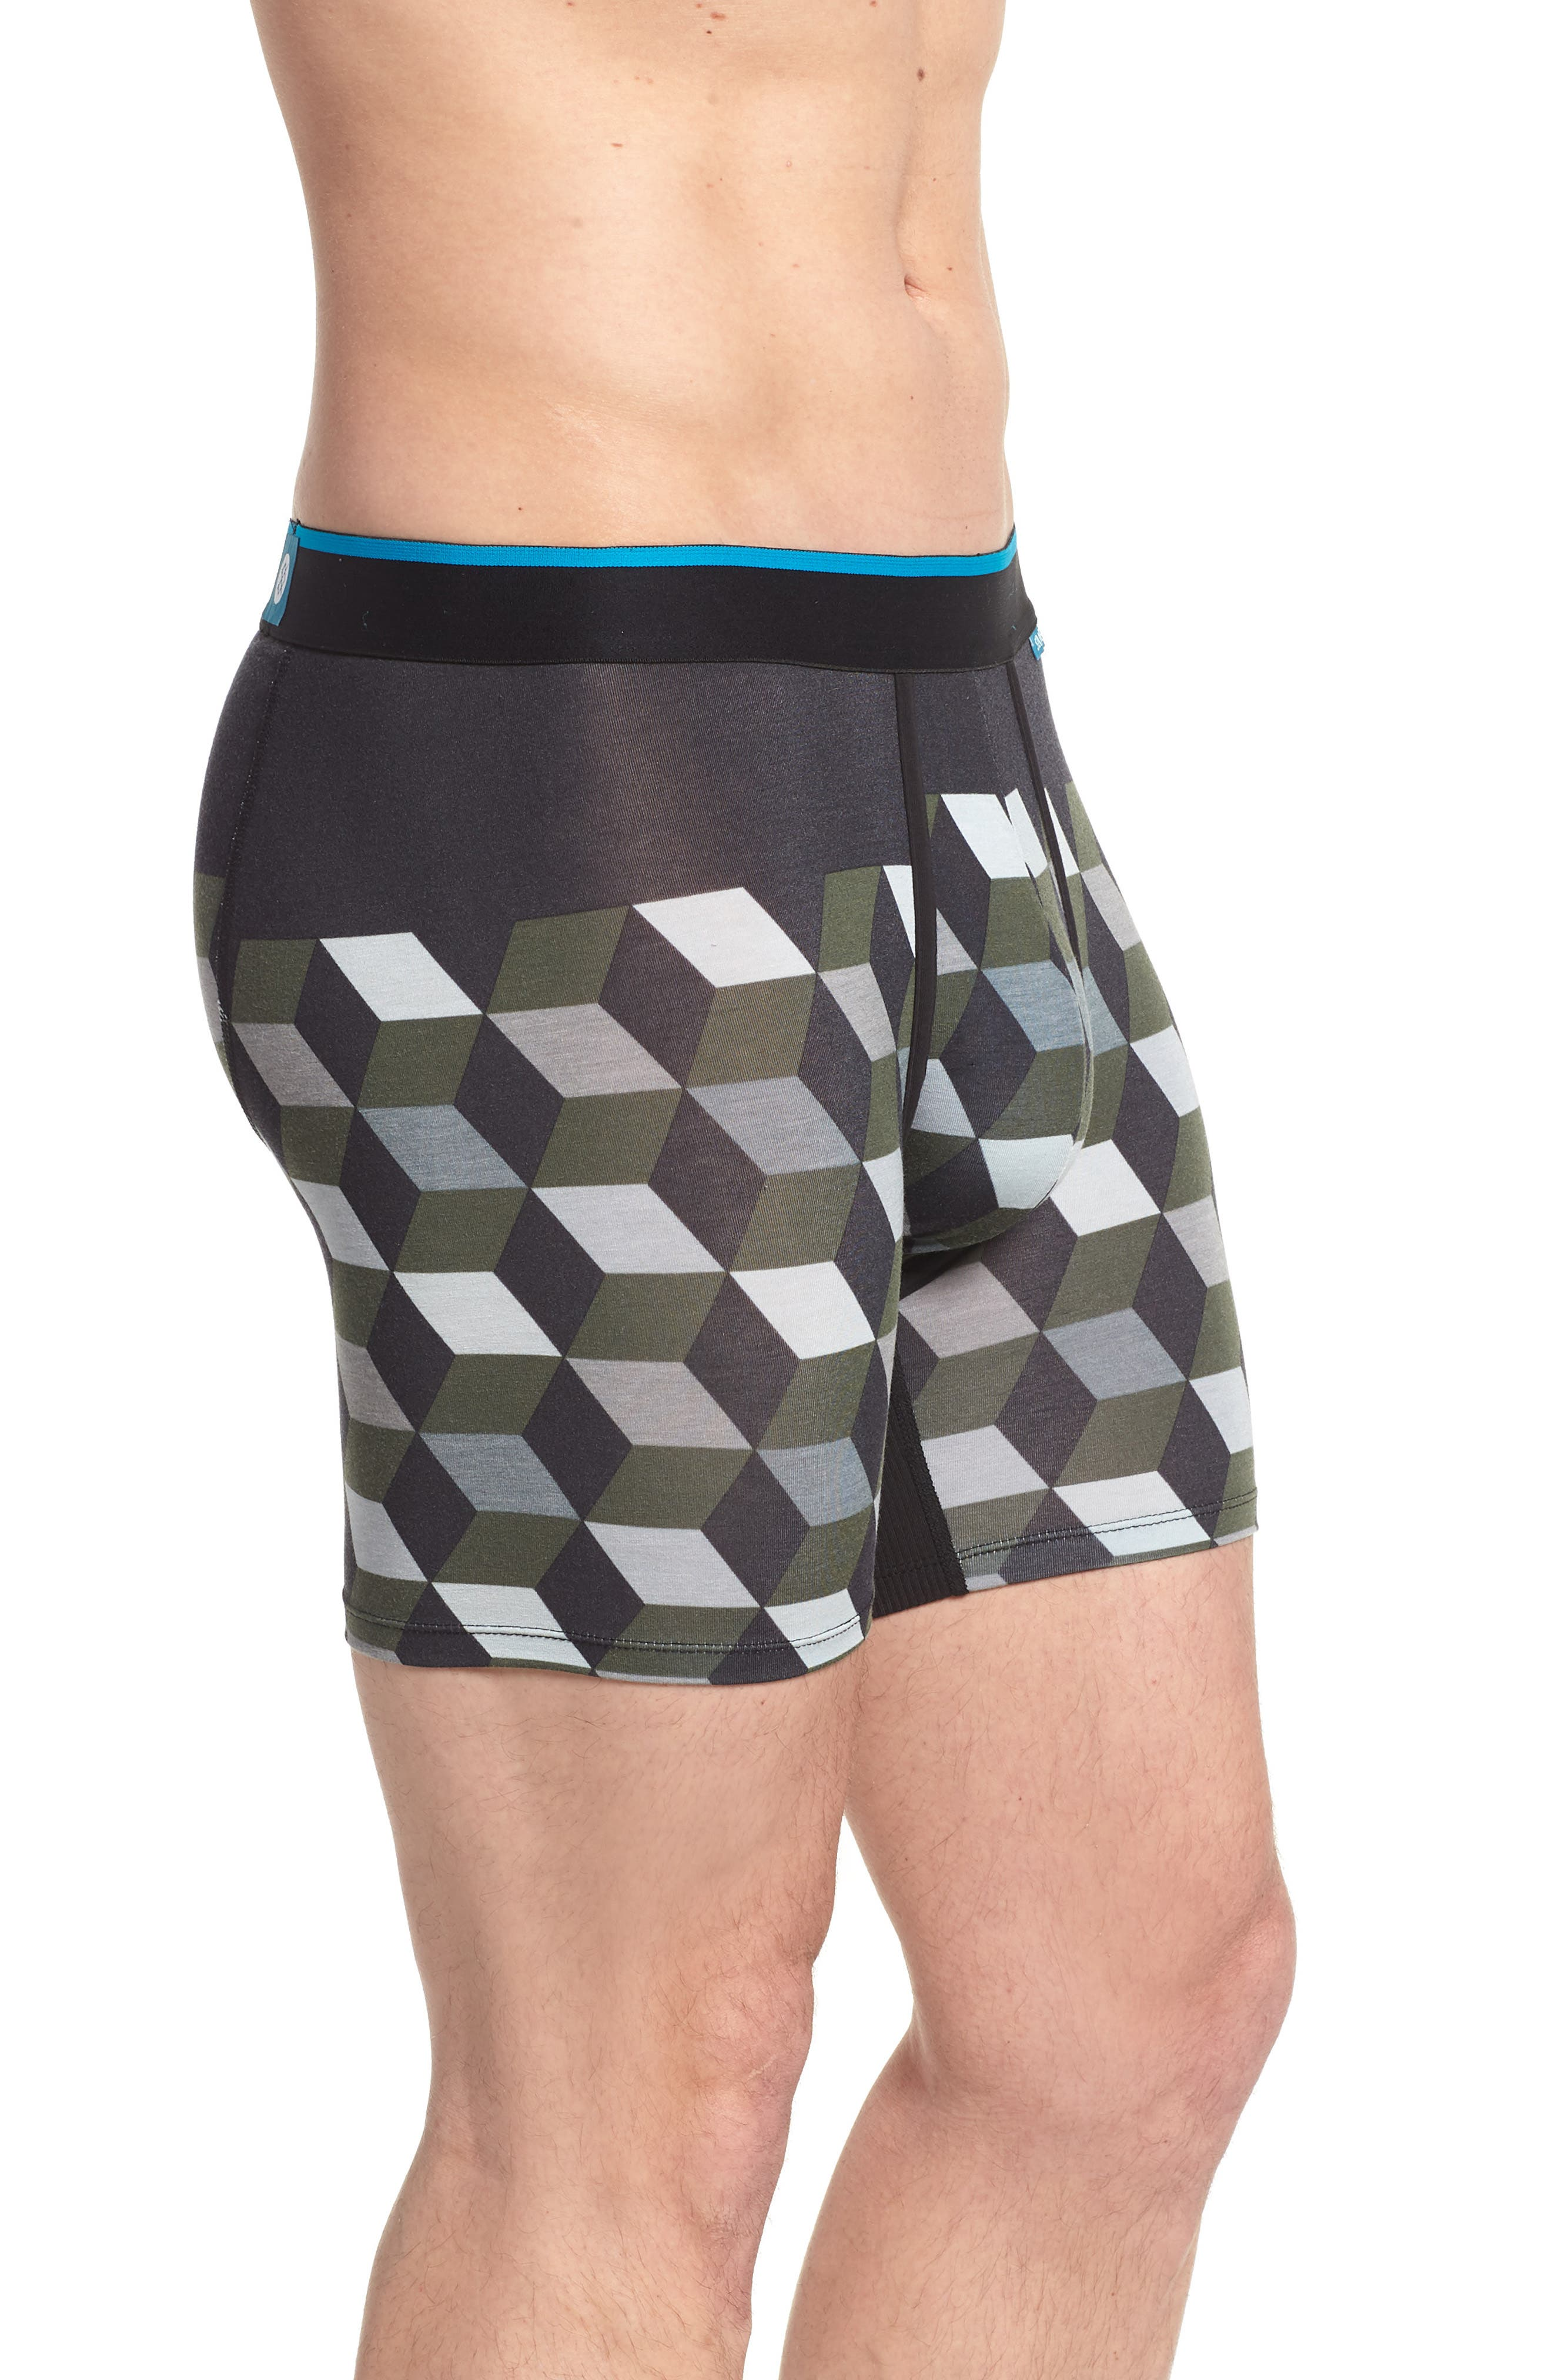 Cubes Wholester Boxer Briefs,                             Alternate thumbnail 3, color,                             Grey